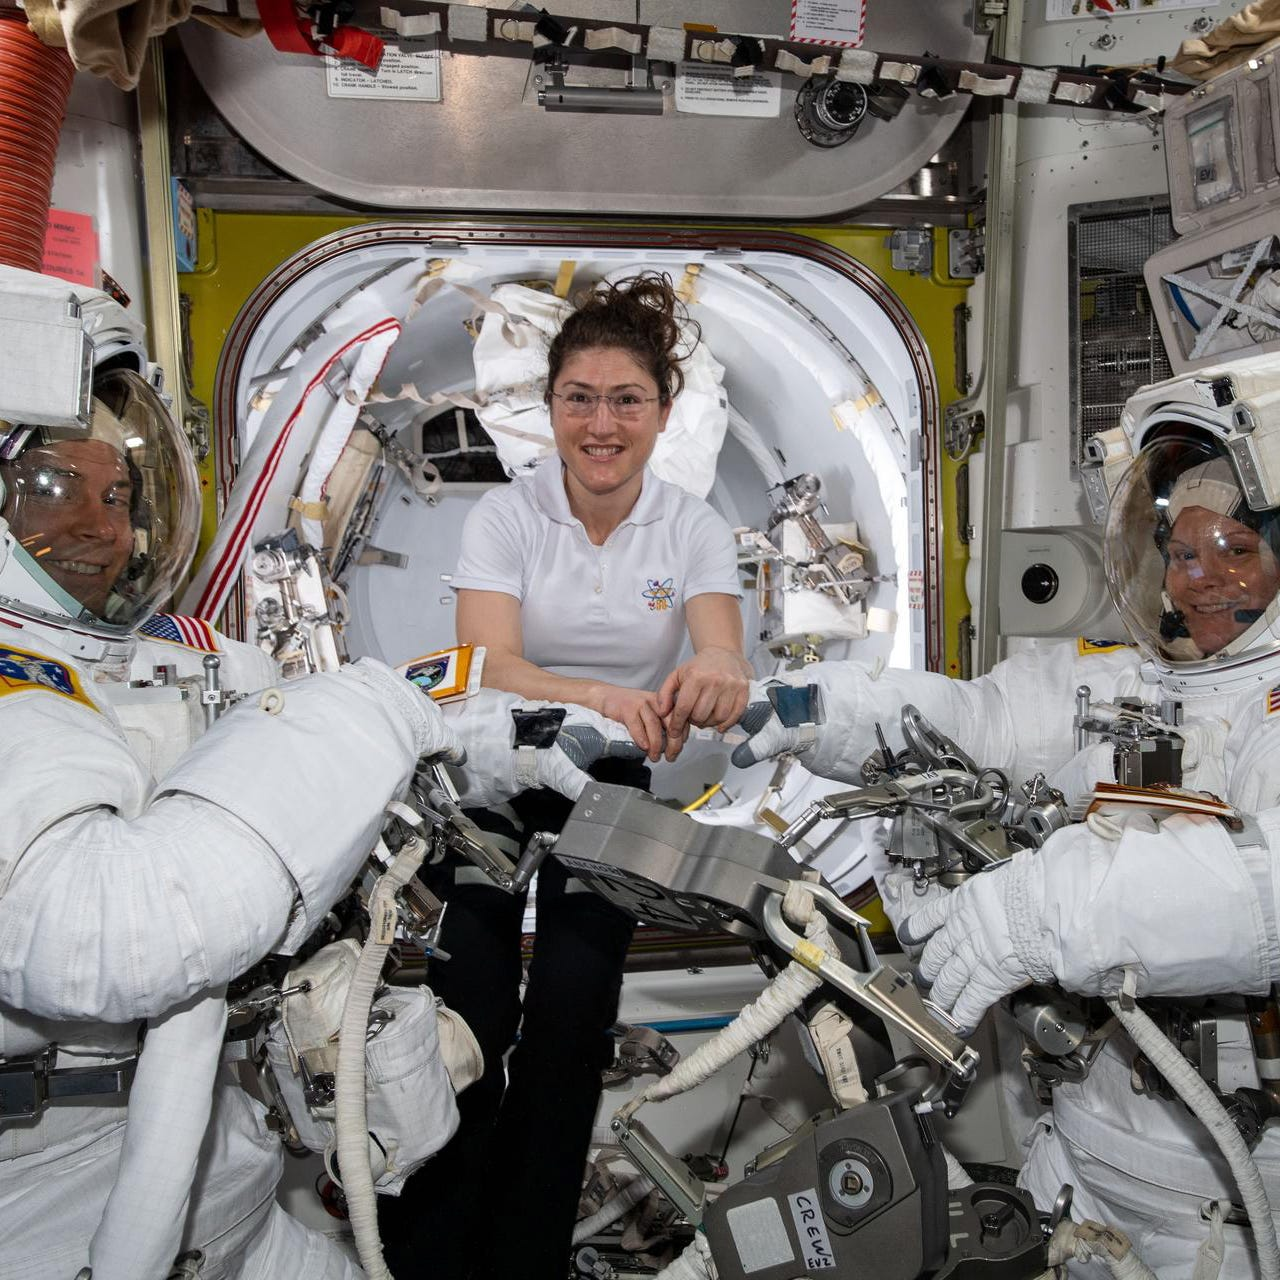 NASA's spacesuit issue is all too familiar for working women